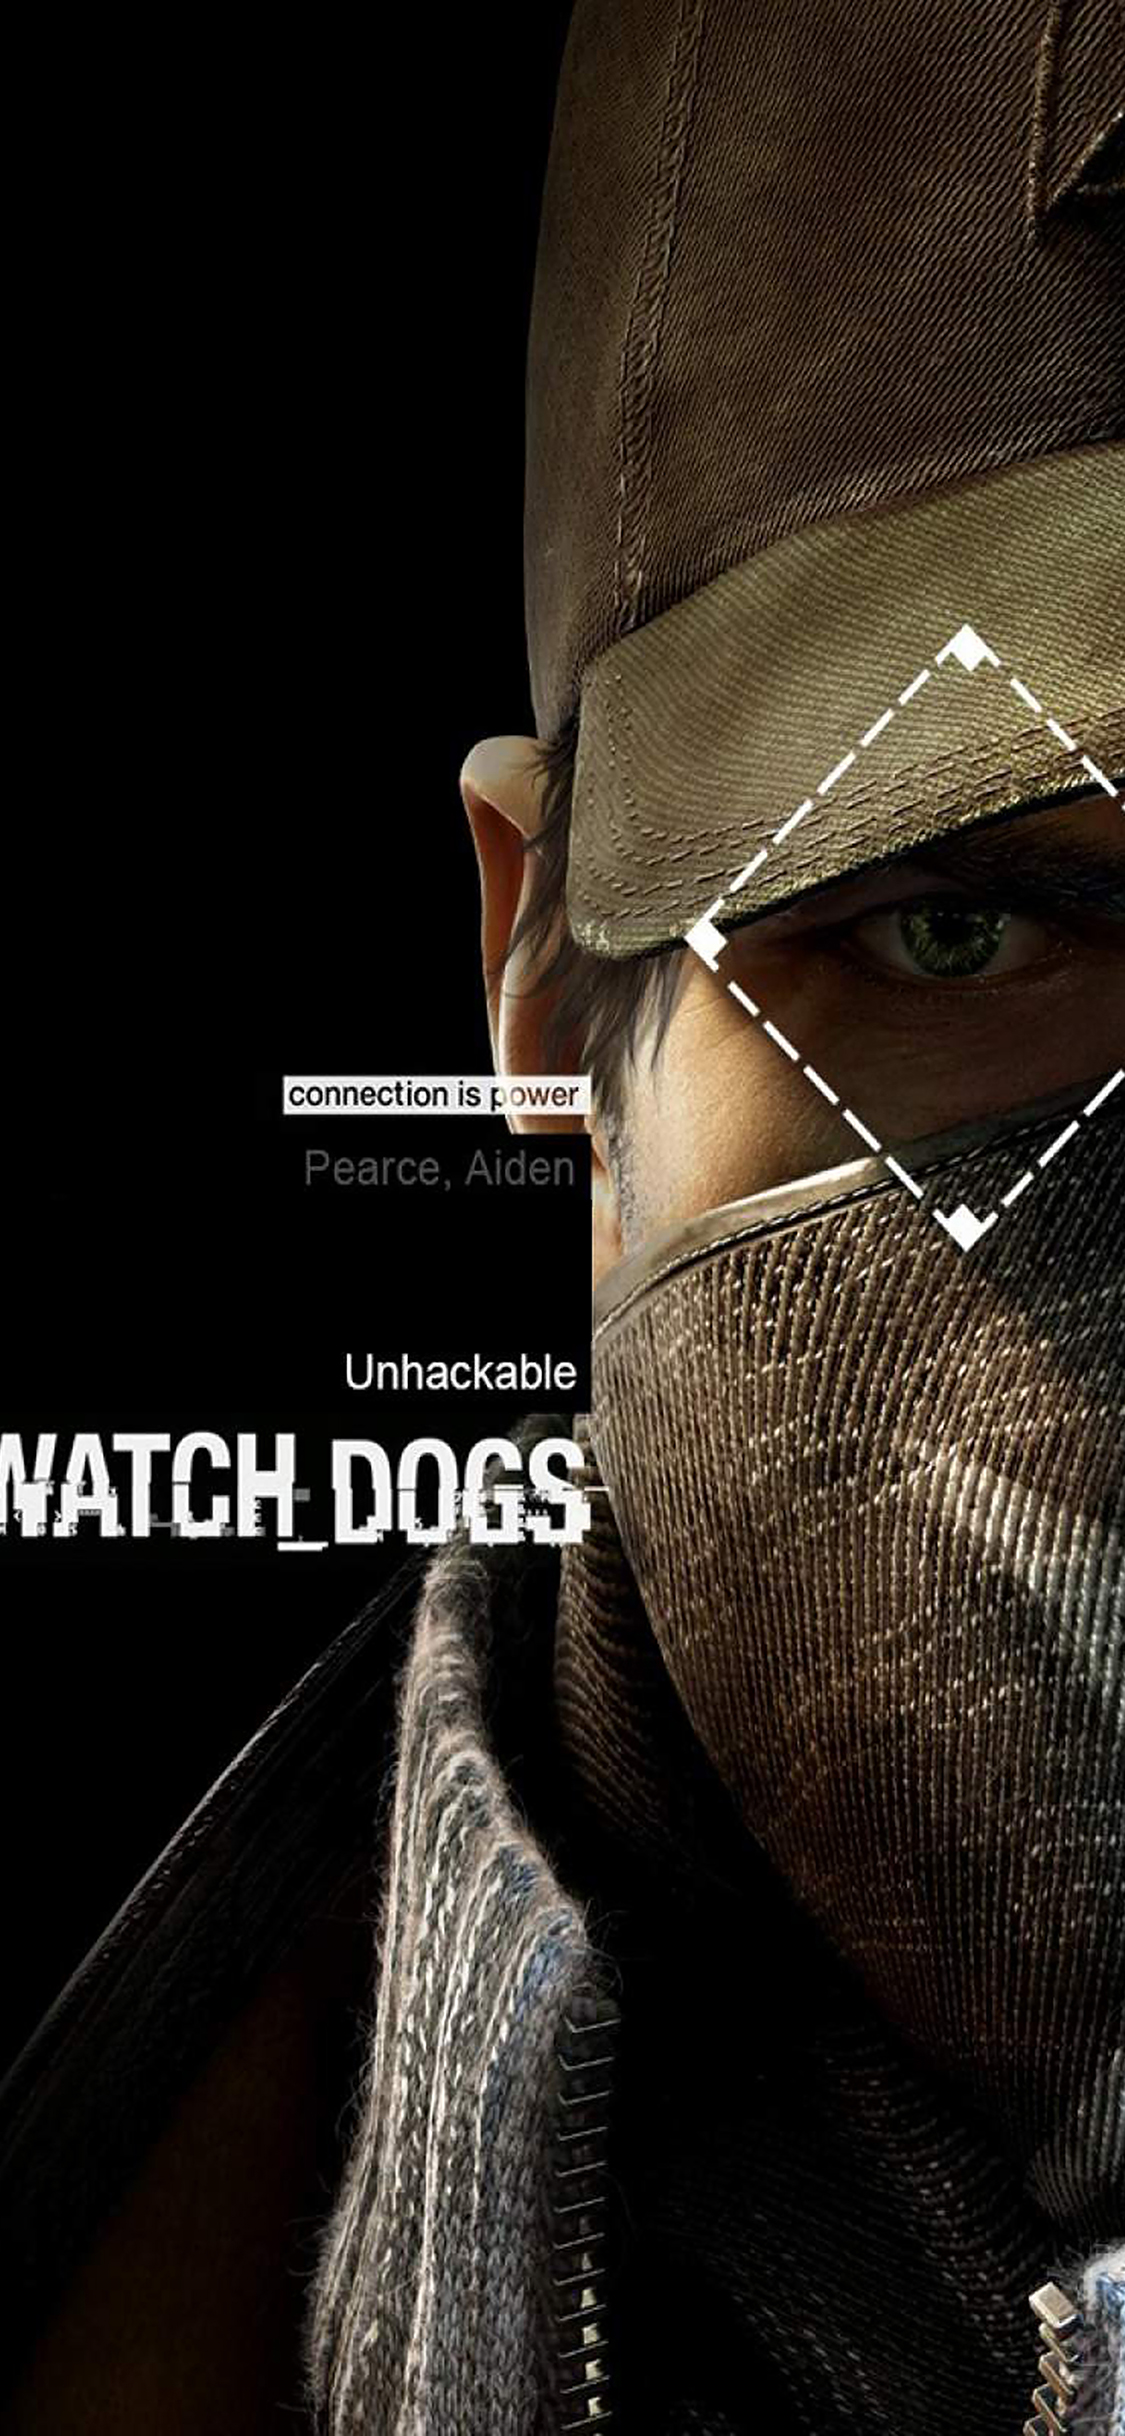 iPhoneXpapers.com-Apple-iPhone-wallpaper-af08-watchdogs-pearce-aiden-connection-is-power